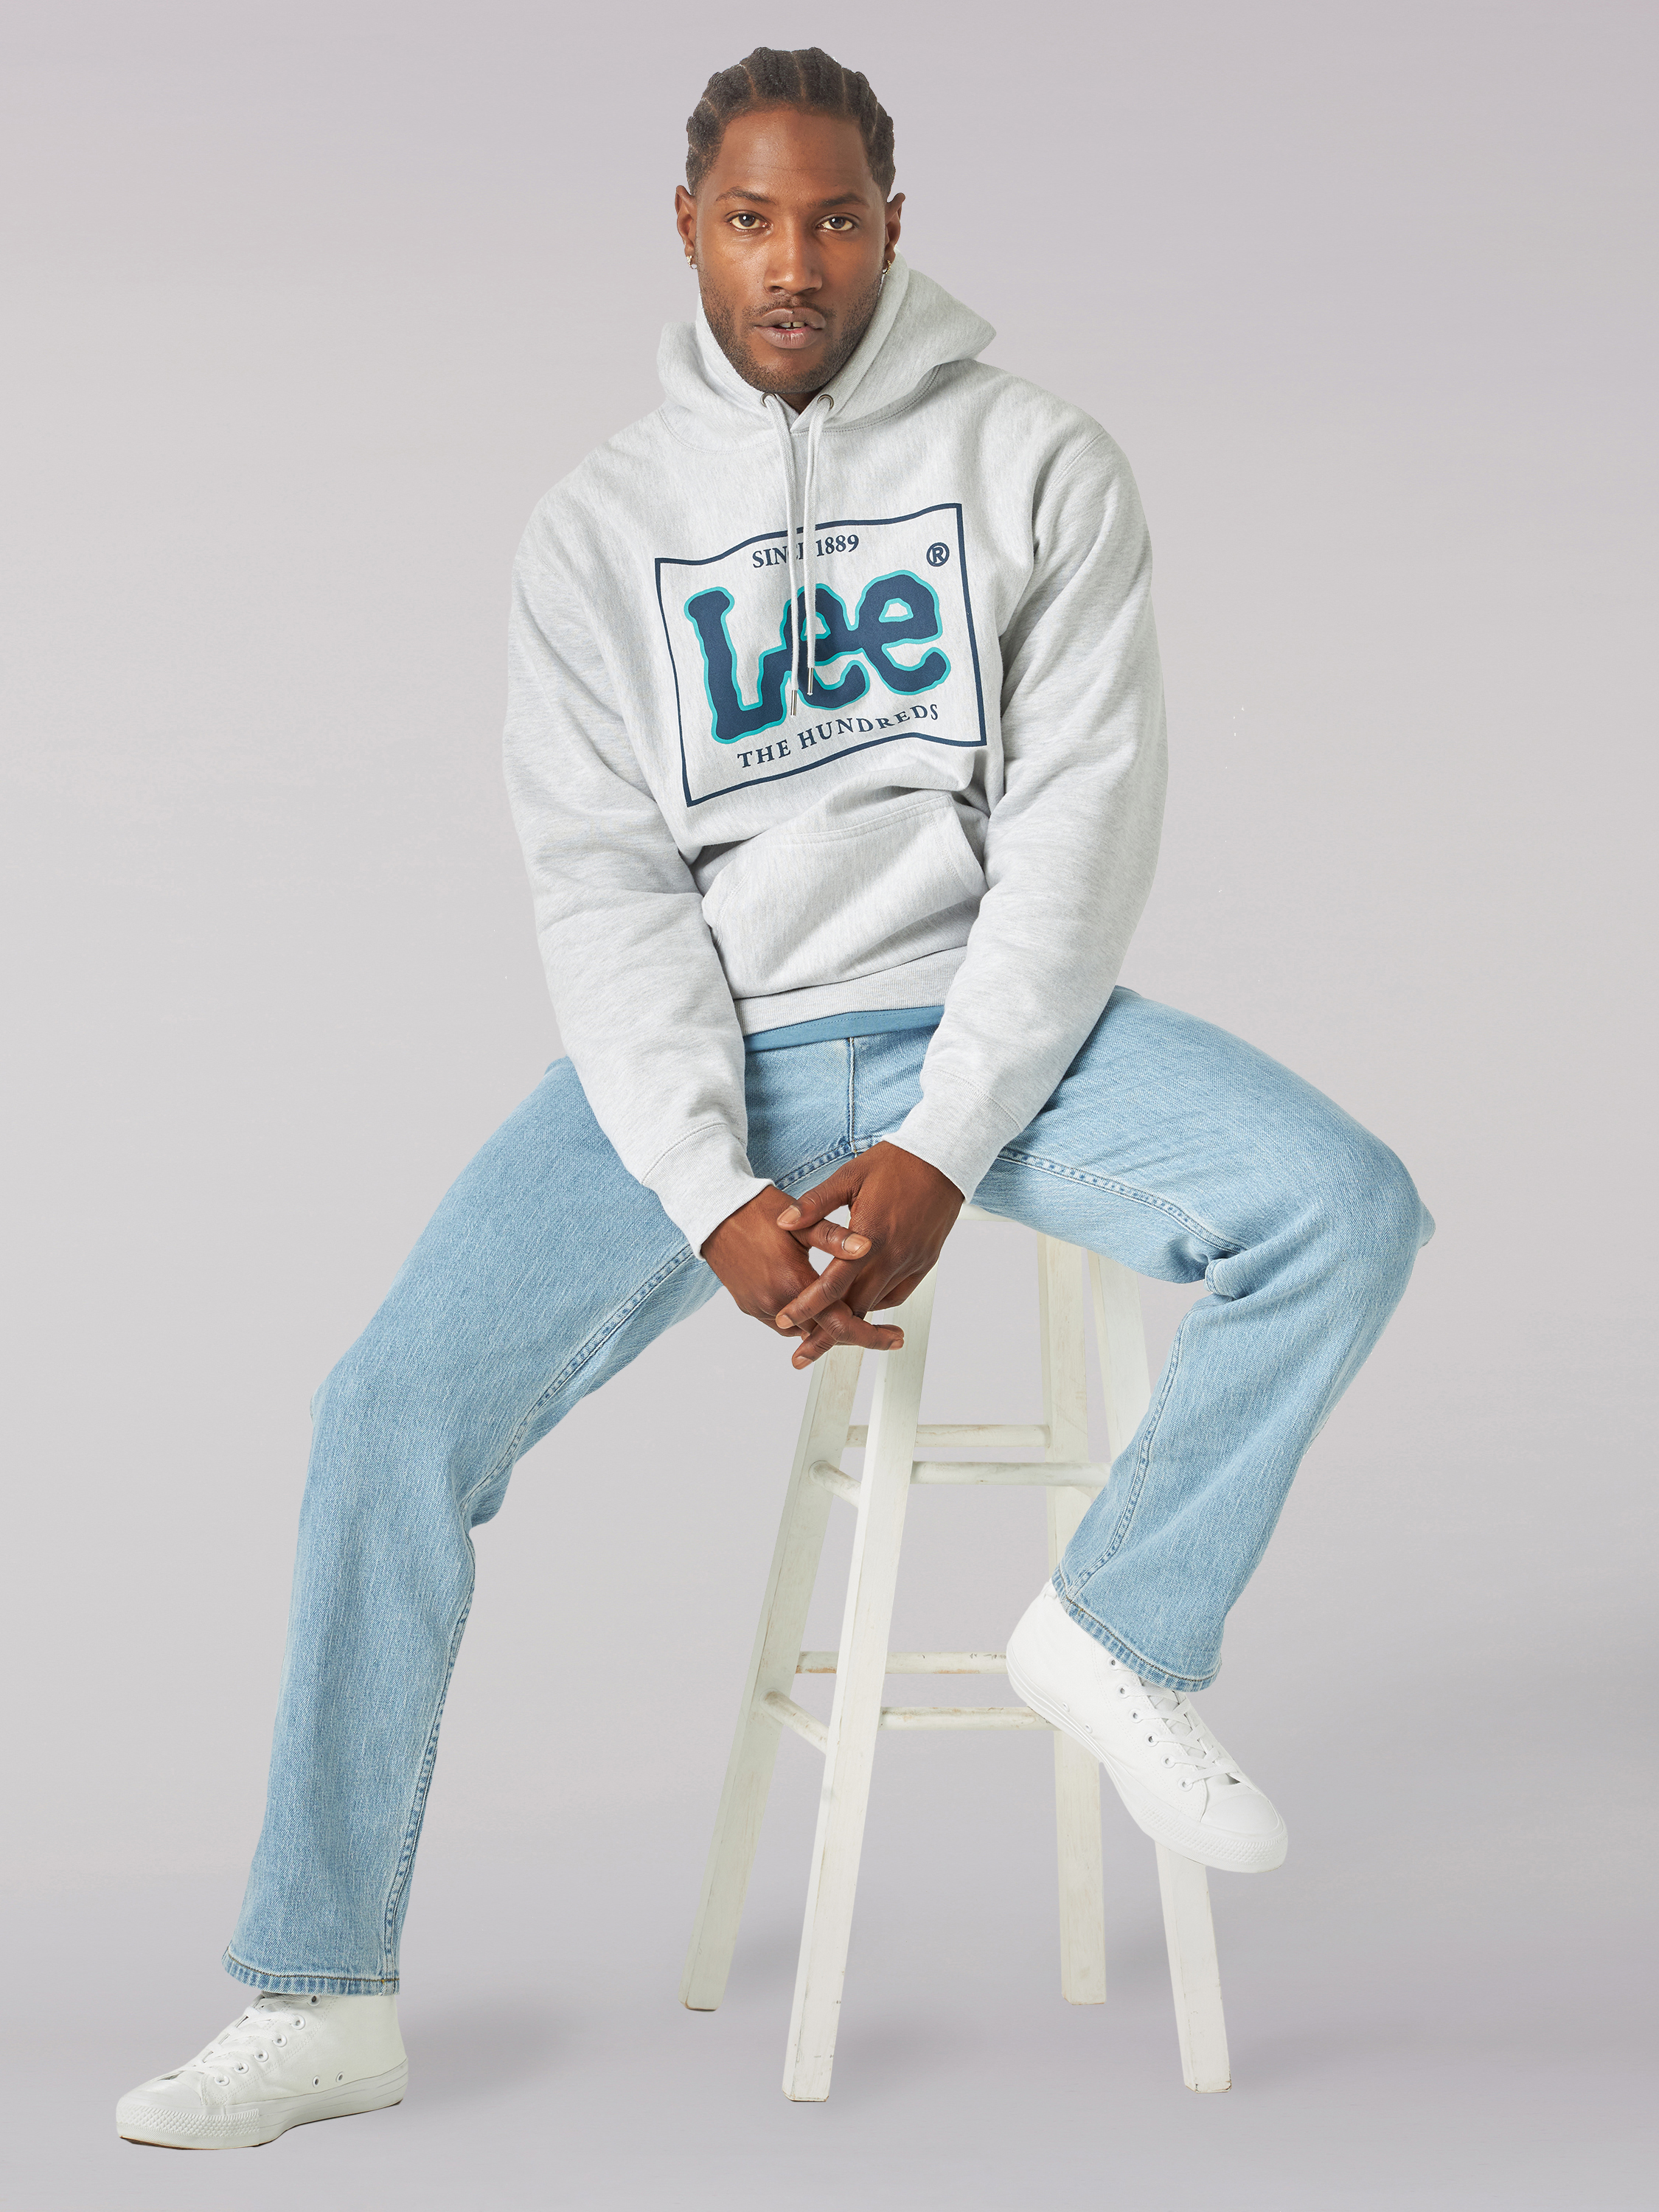 The Hundreds X Lee collection